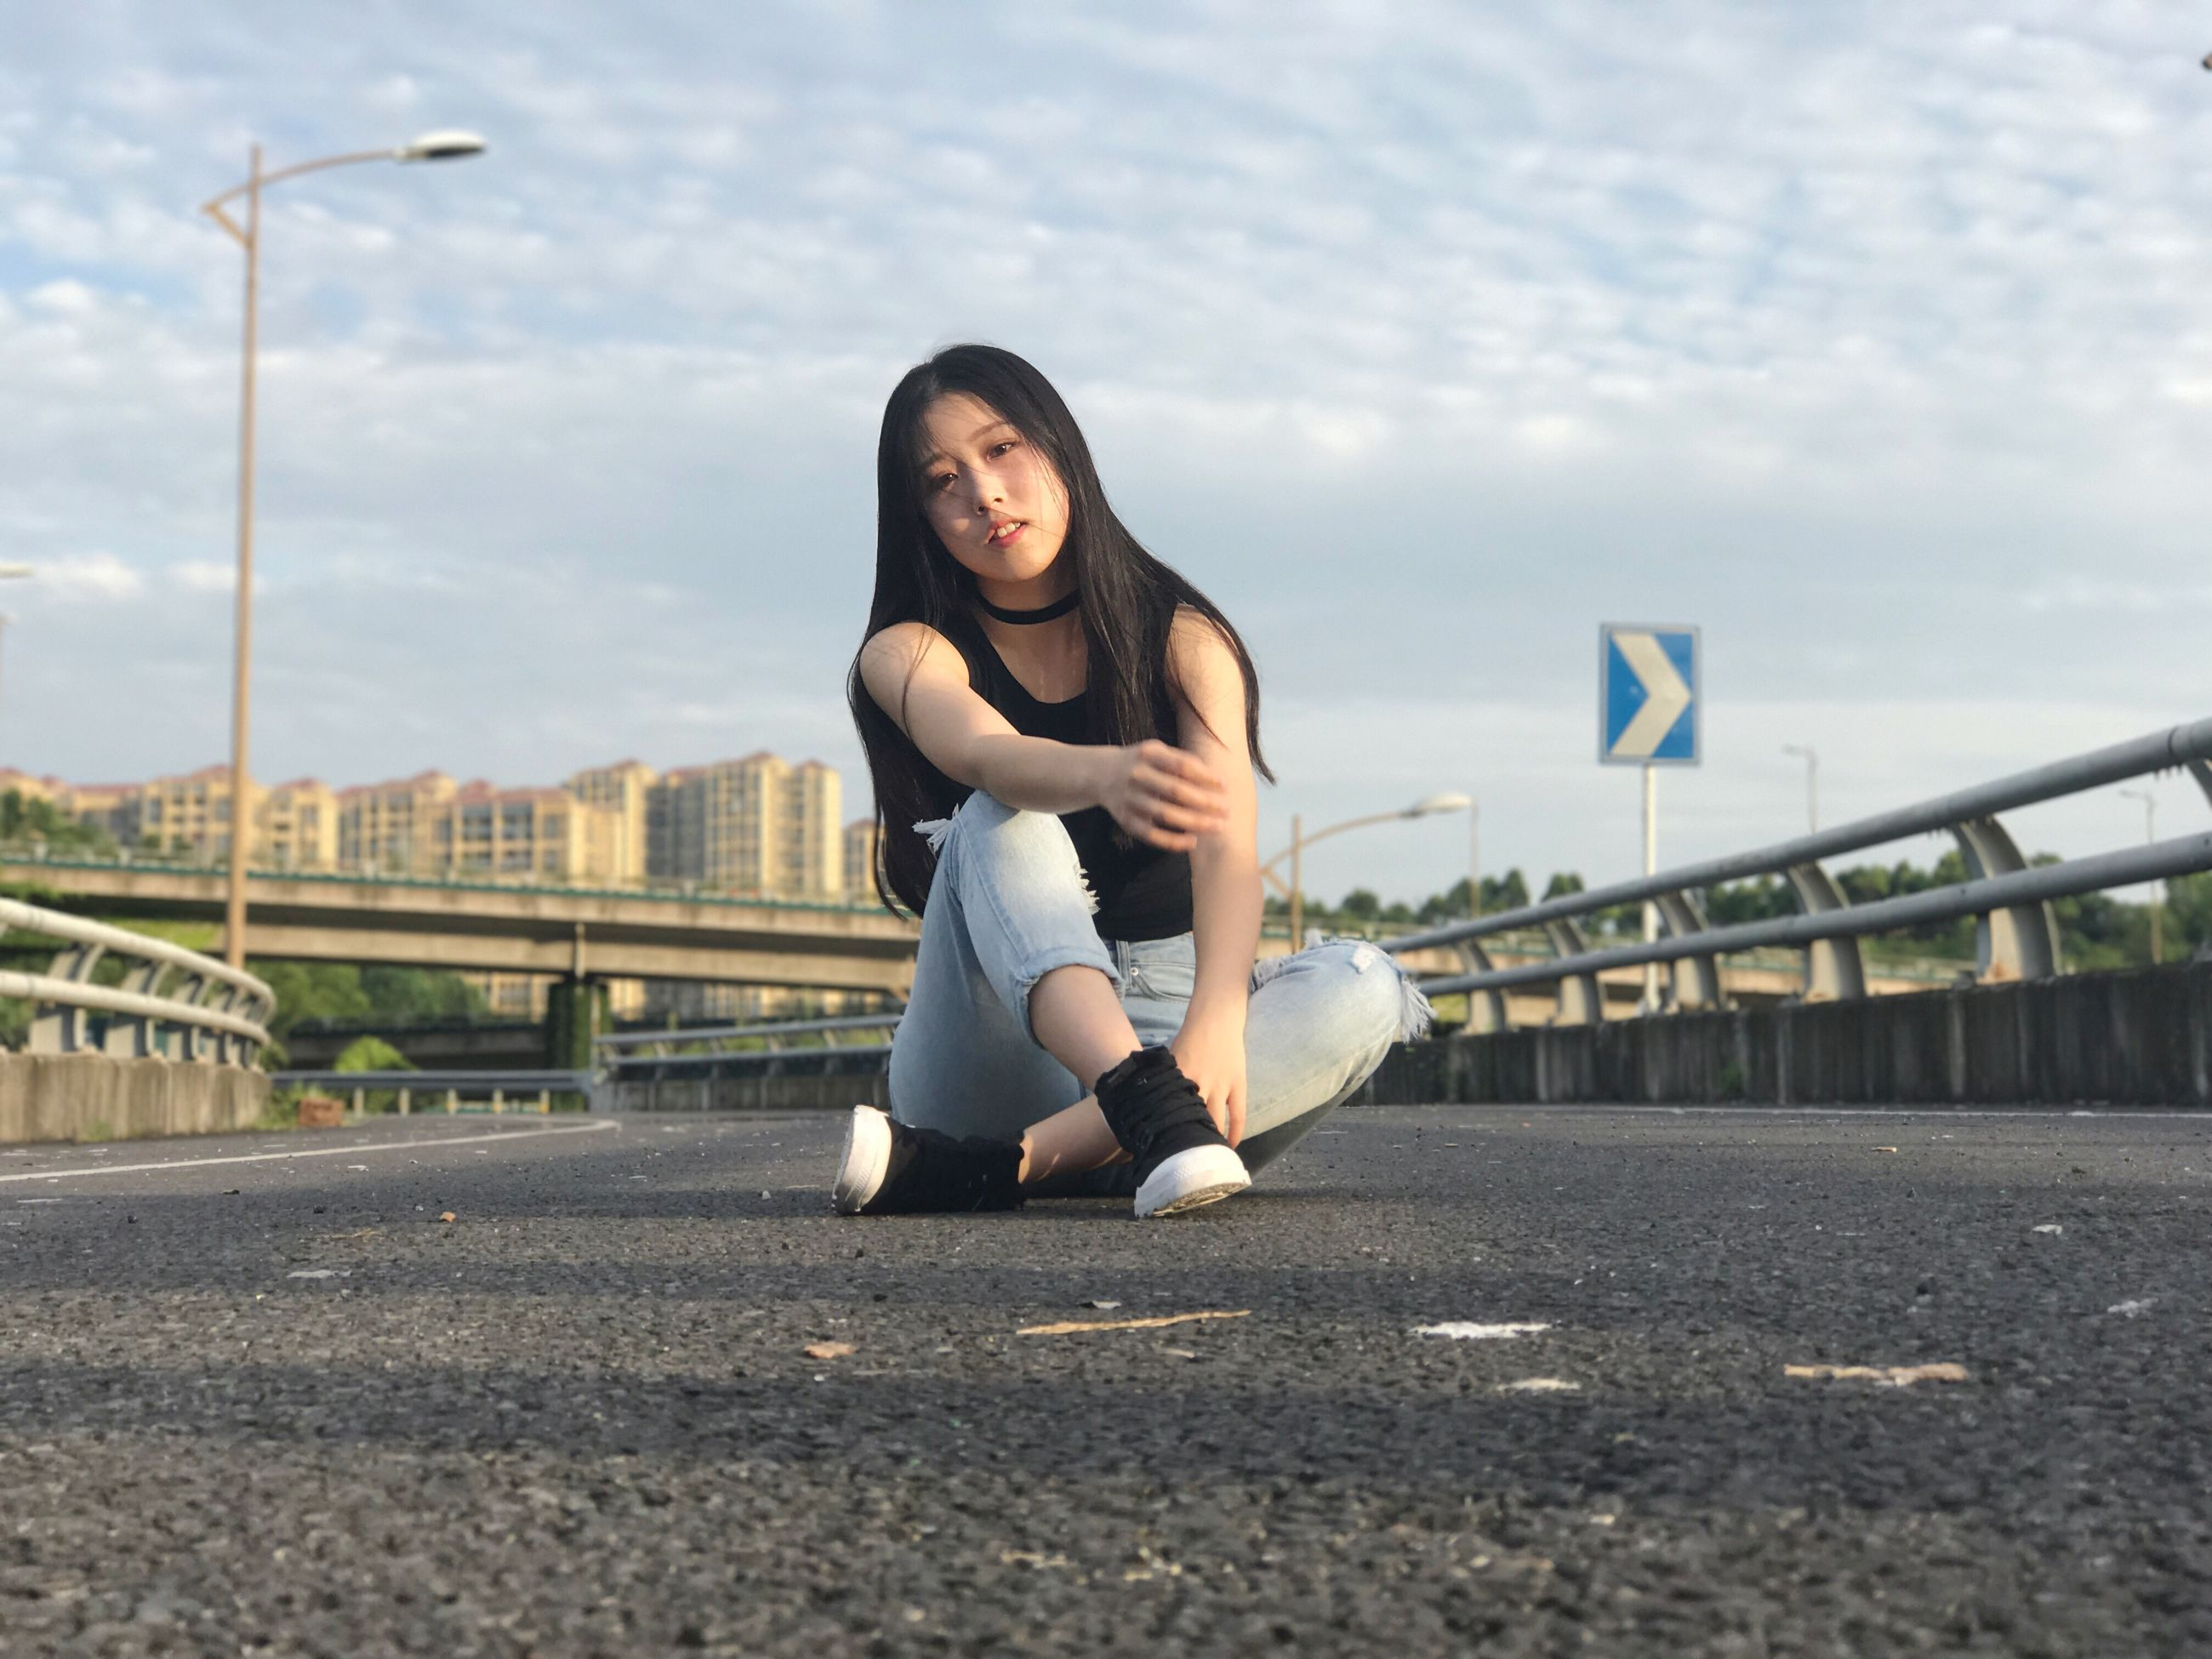 lifestyles, bridge - man made structure, one person, young adult, real people, leisure activity, young women, outdoors, built structure, day, healthy lifestyle, sky, full length, sports clothing, cloud - sky, architecture, sitting, exercising, beautiful woman, sport, city, people